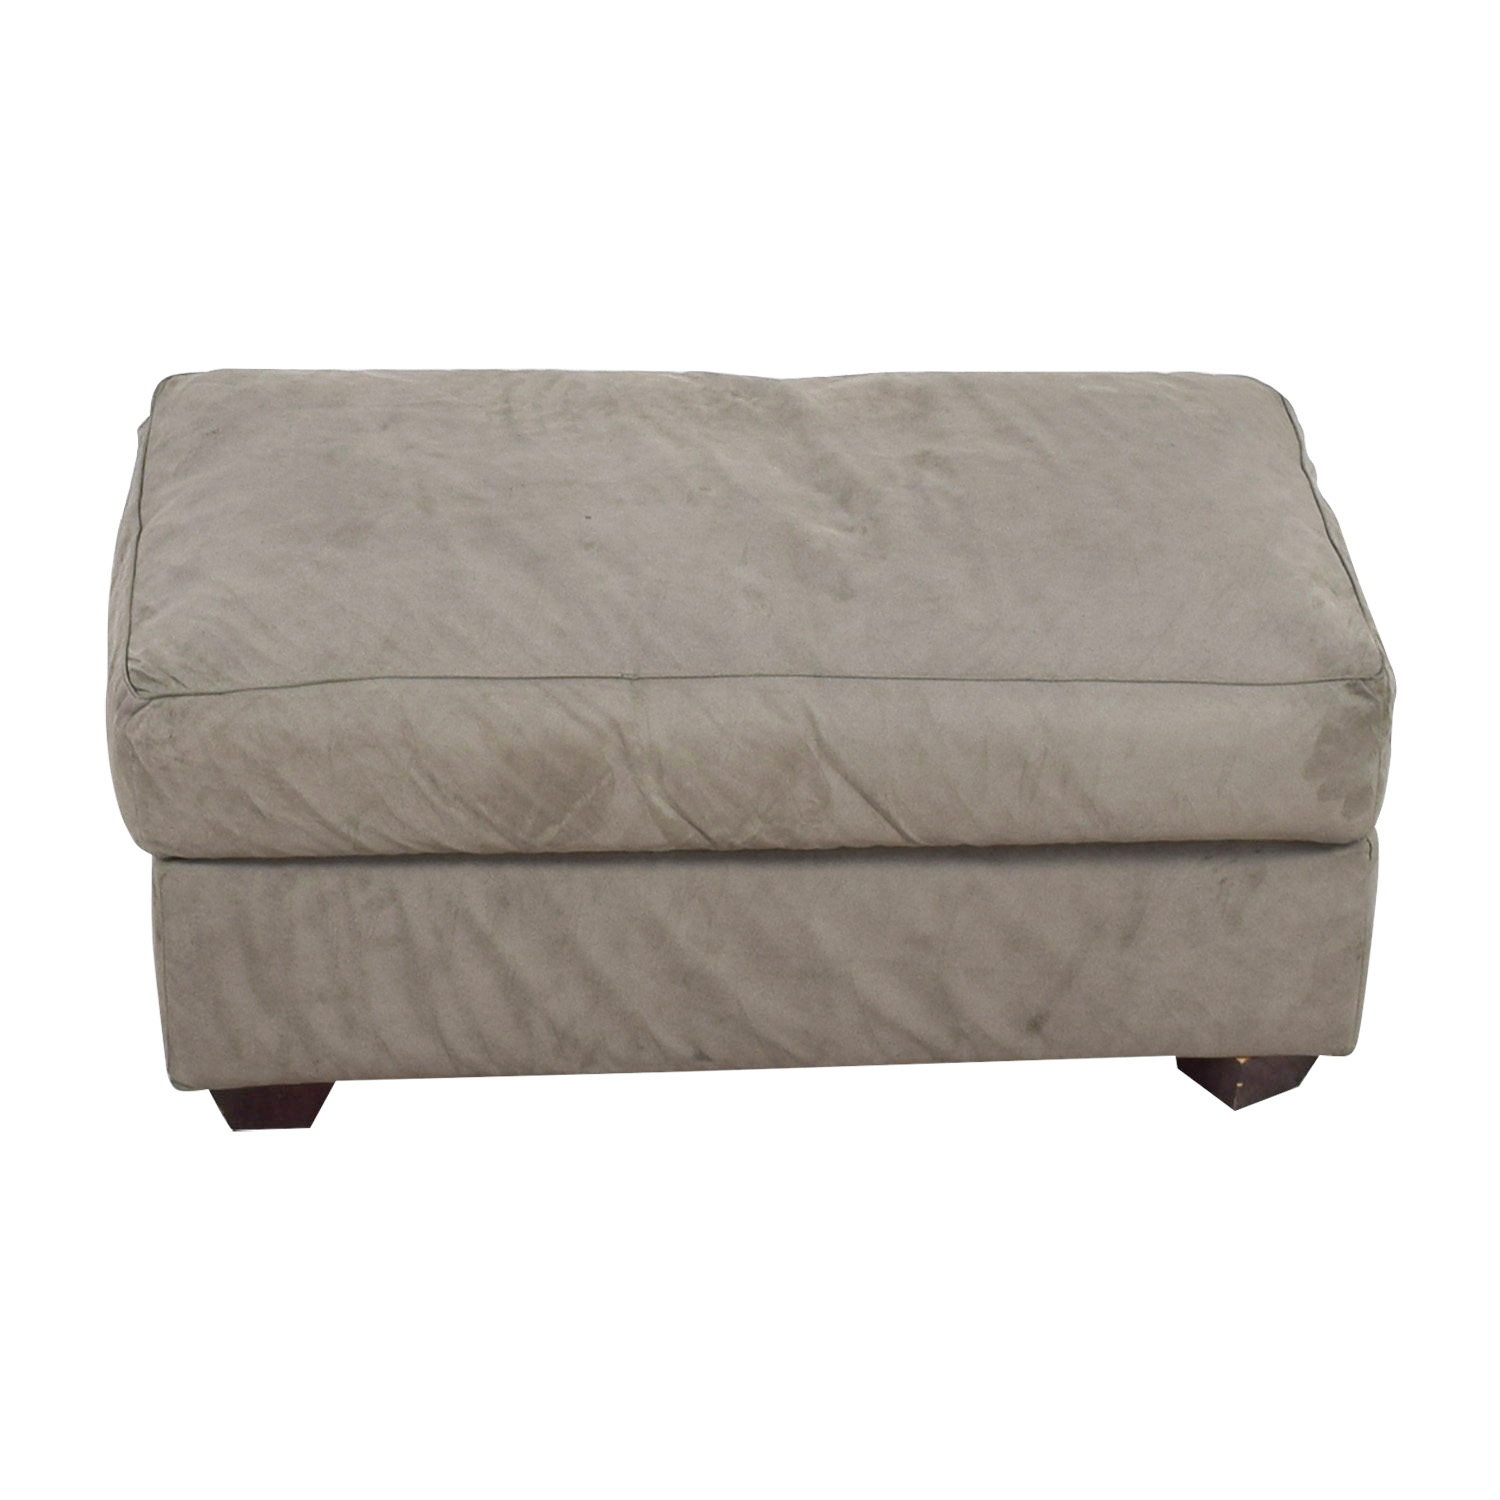 Palezetti 1930 Palezetti 1930 JM Frank Inspired 1930 Grey Ottoman on sale